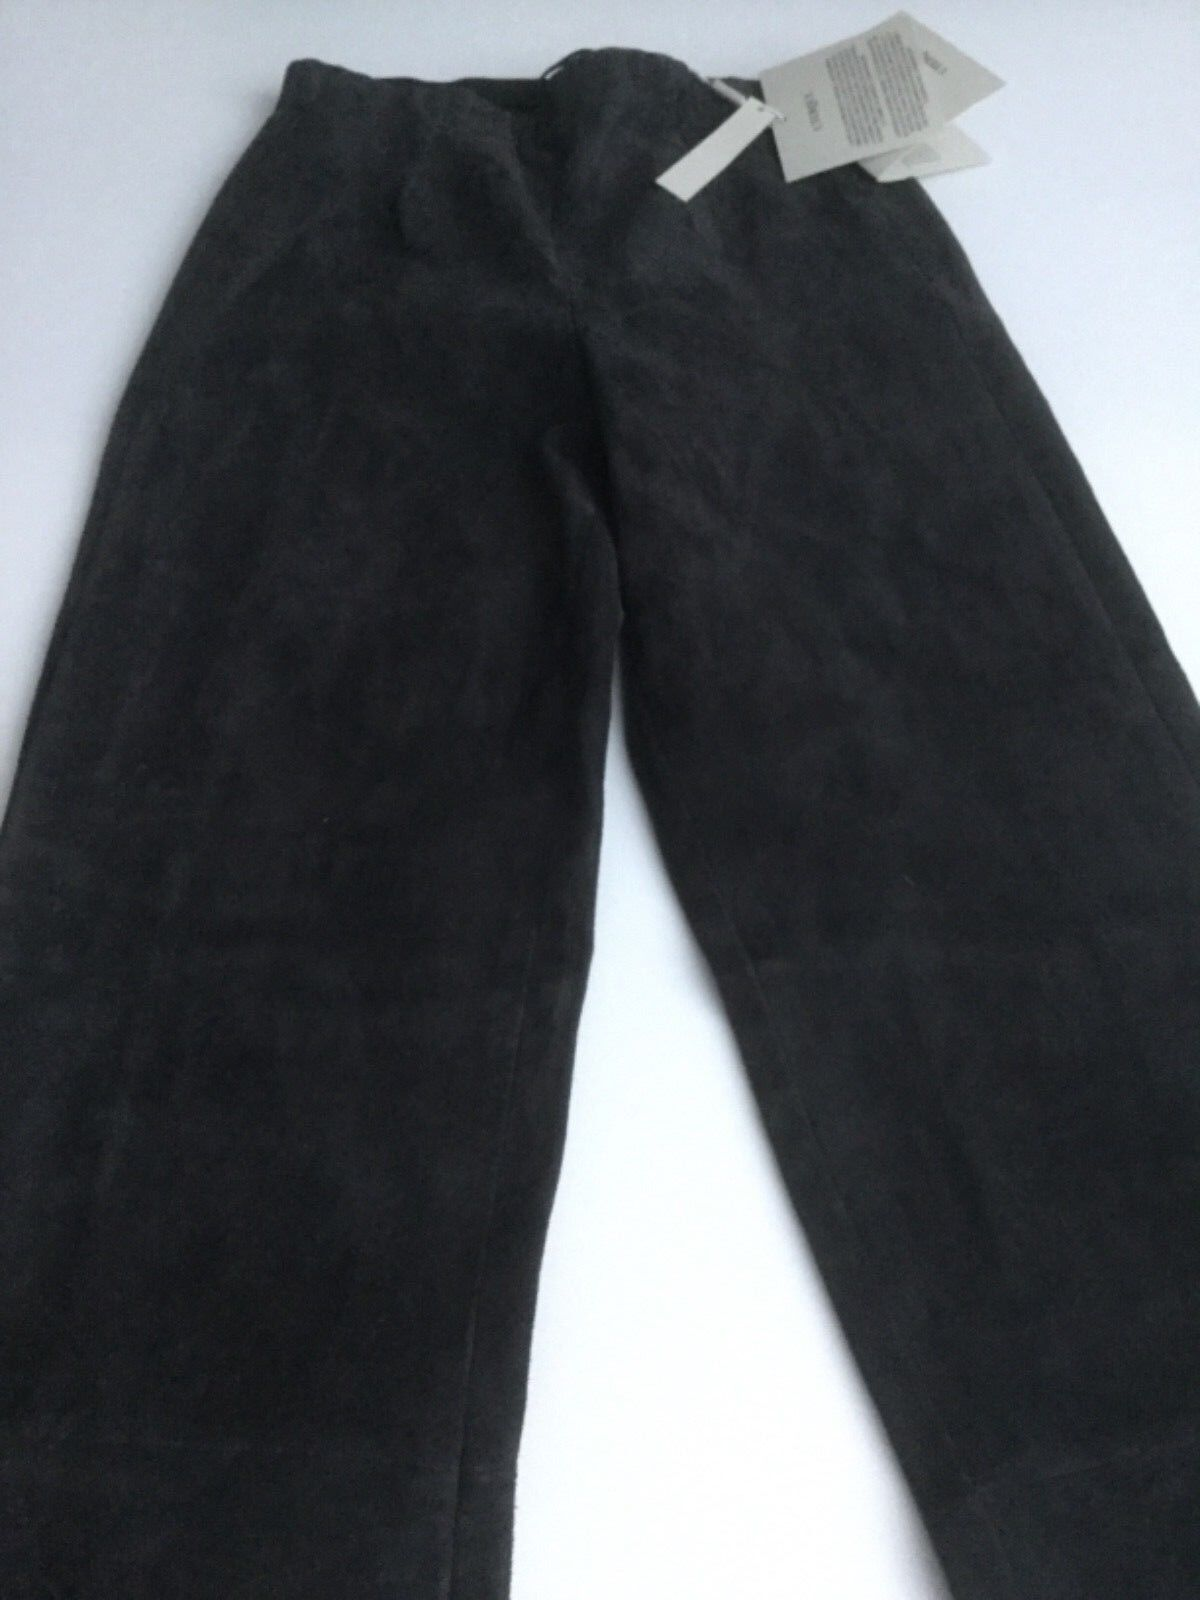 BNWT 'UTERQUE' GREY SUEDE SKINNY STRAIGHT LEG DESIGNER TROUSERS SIZE EUR S